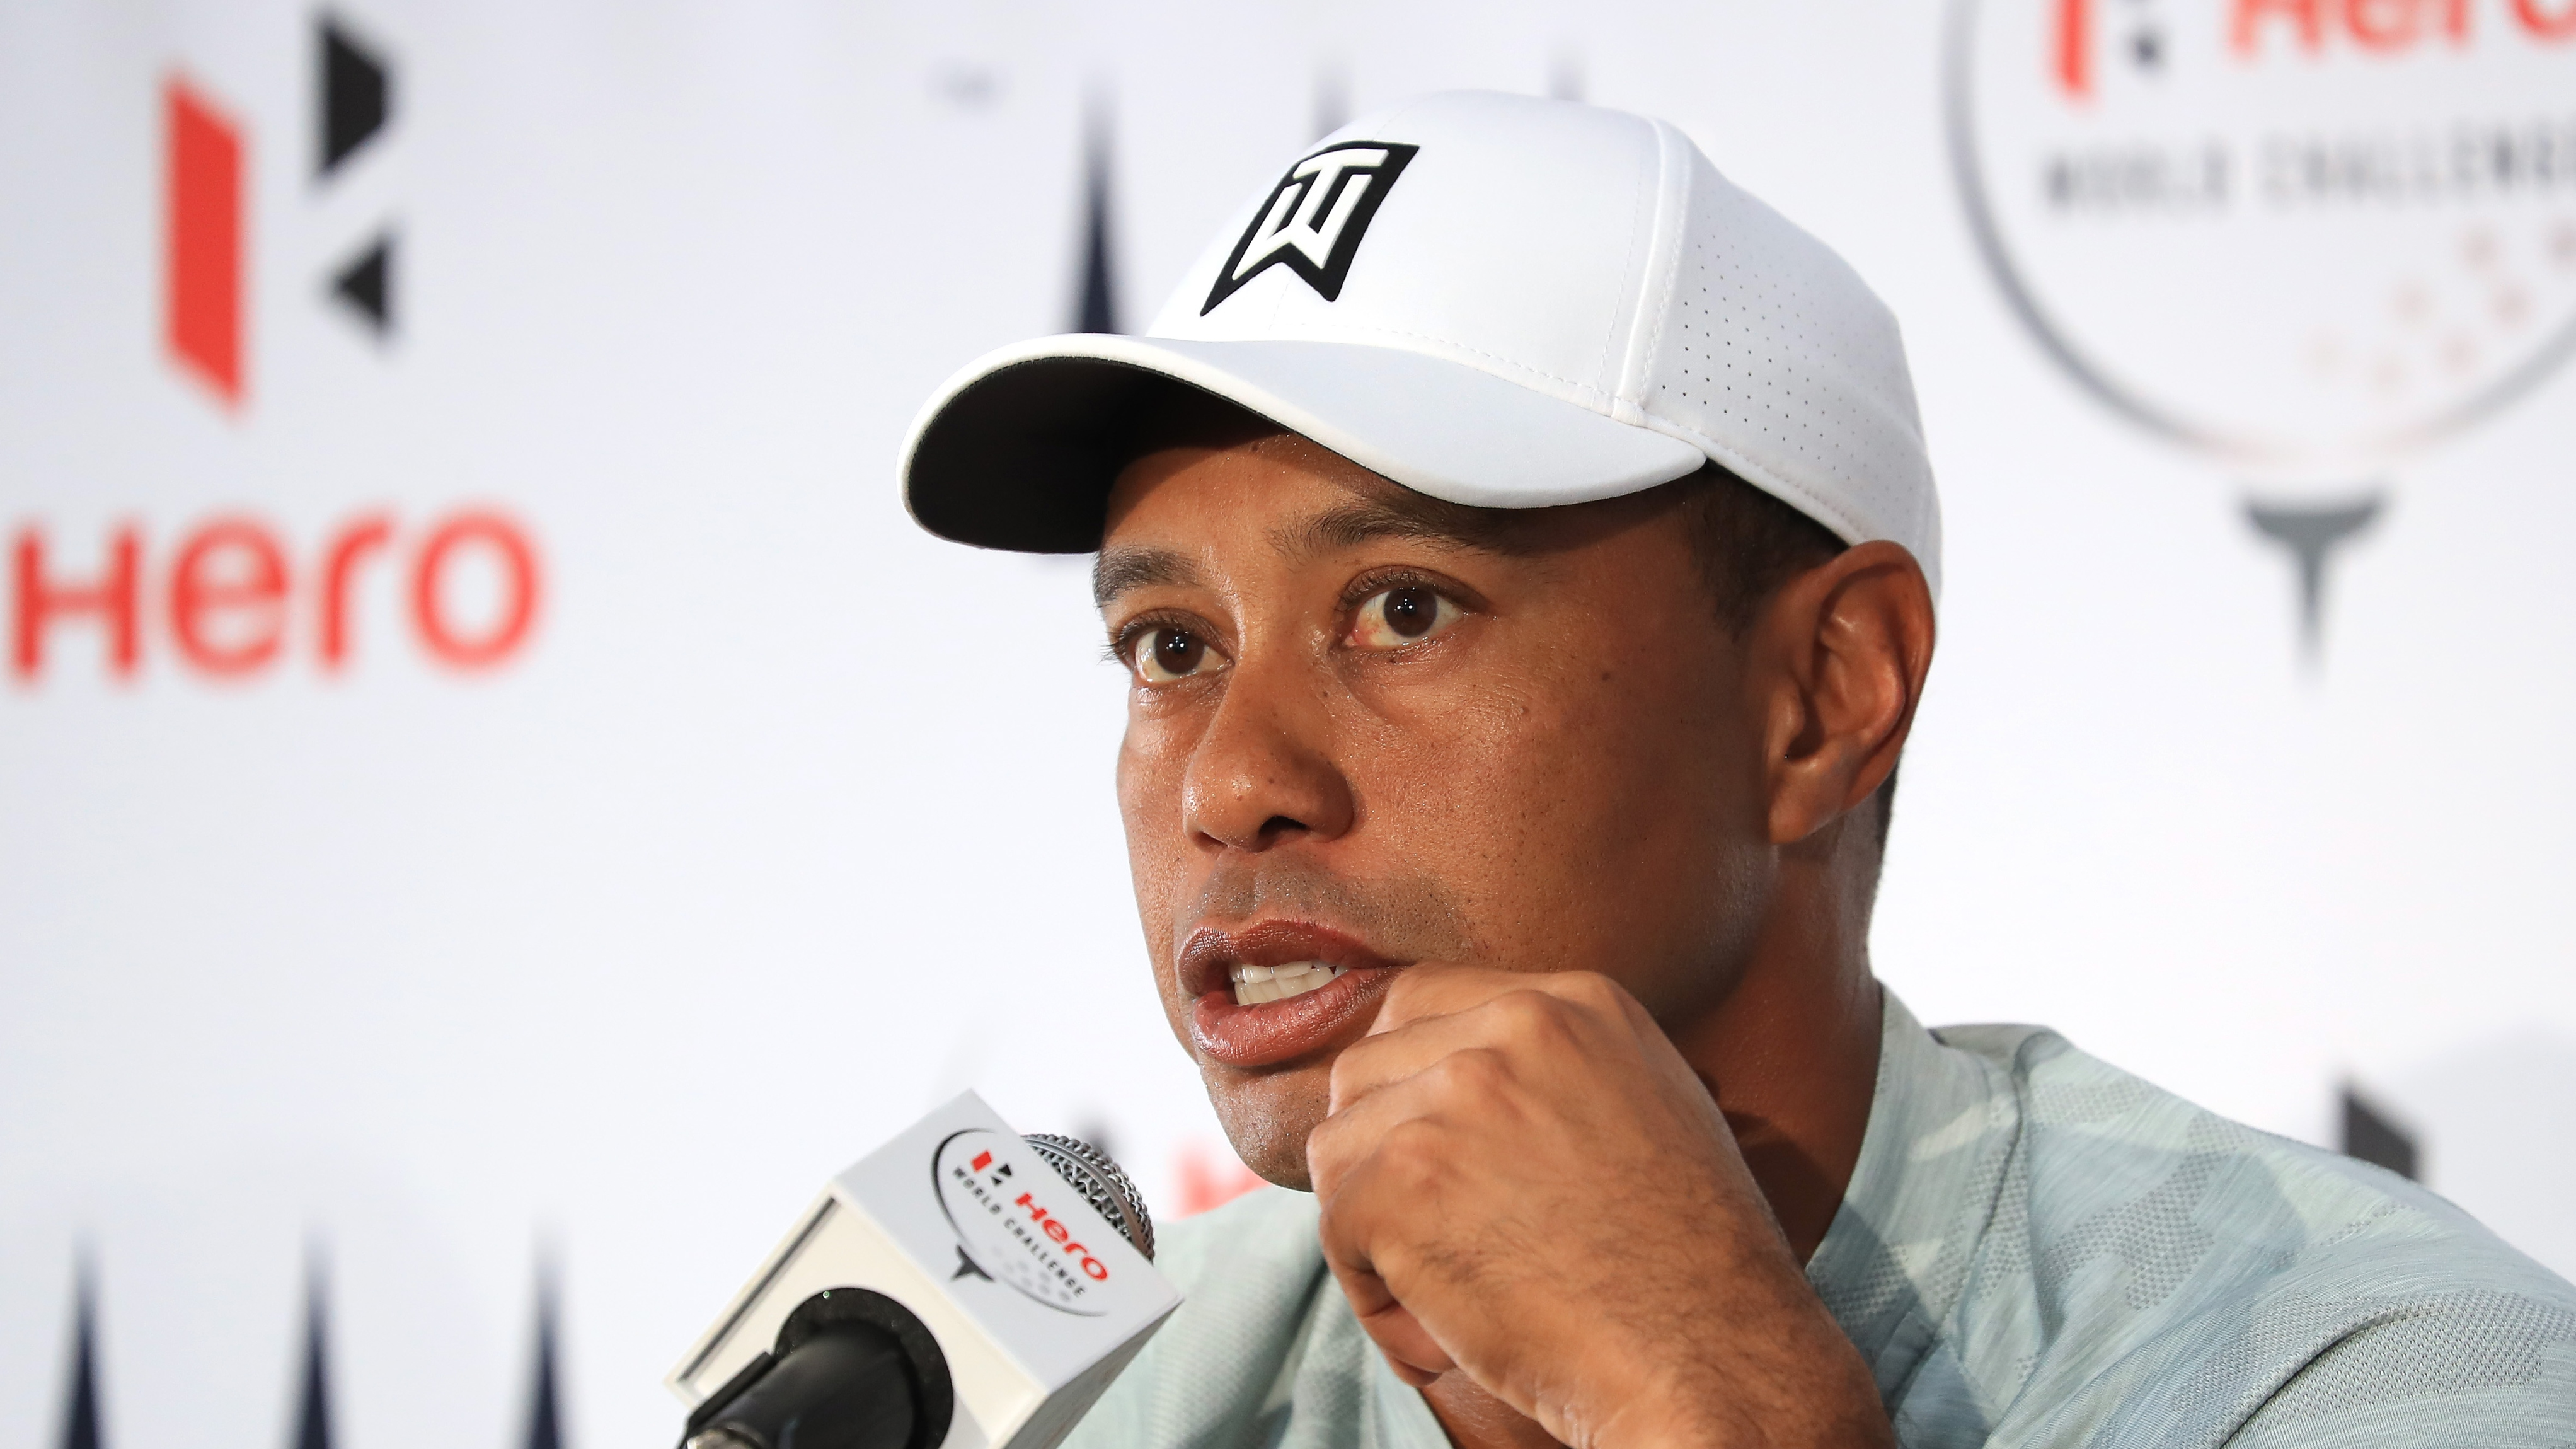 Tiger woods sentry tournament of champions schedule